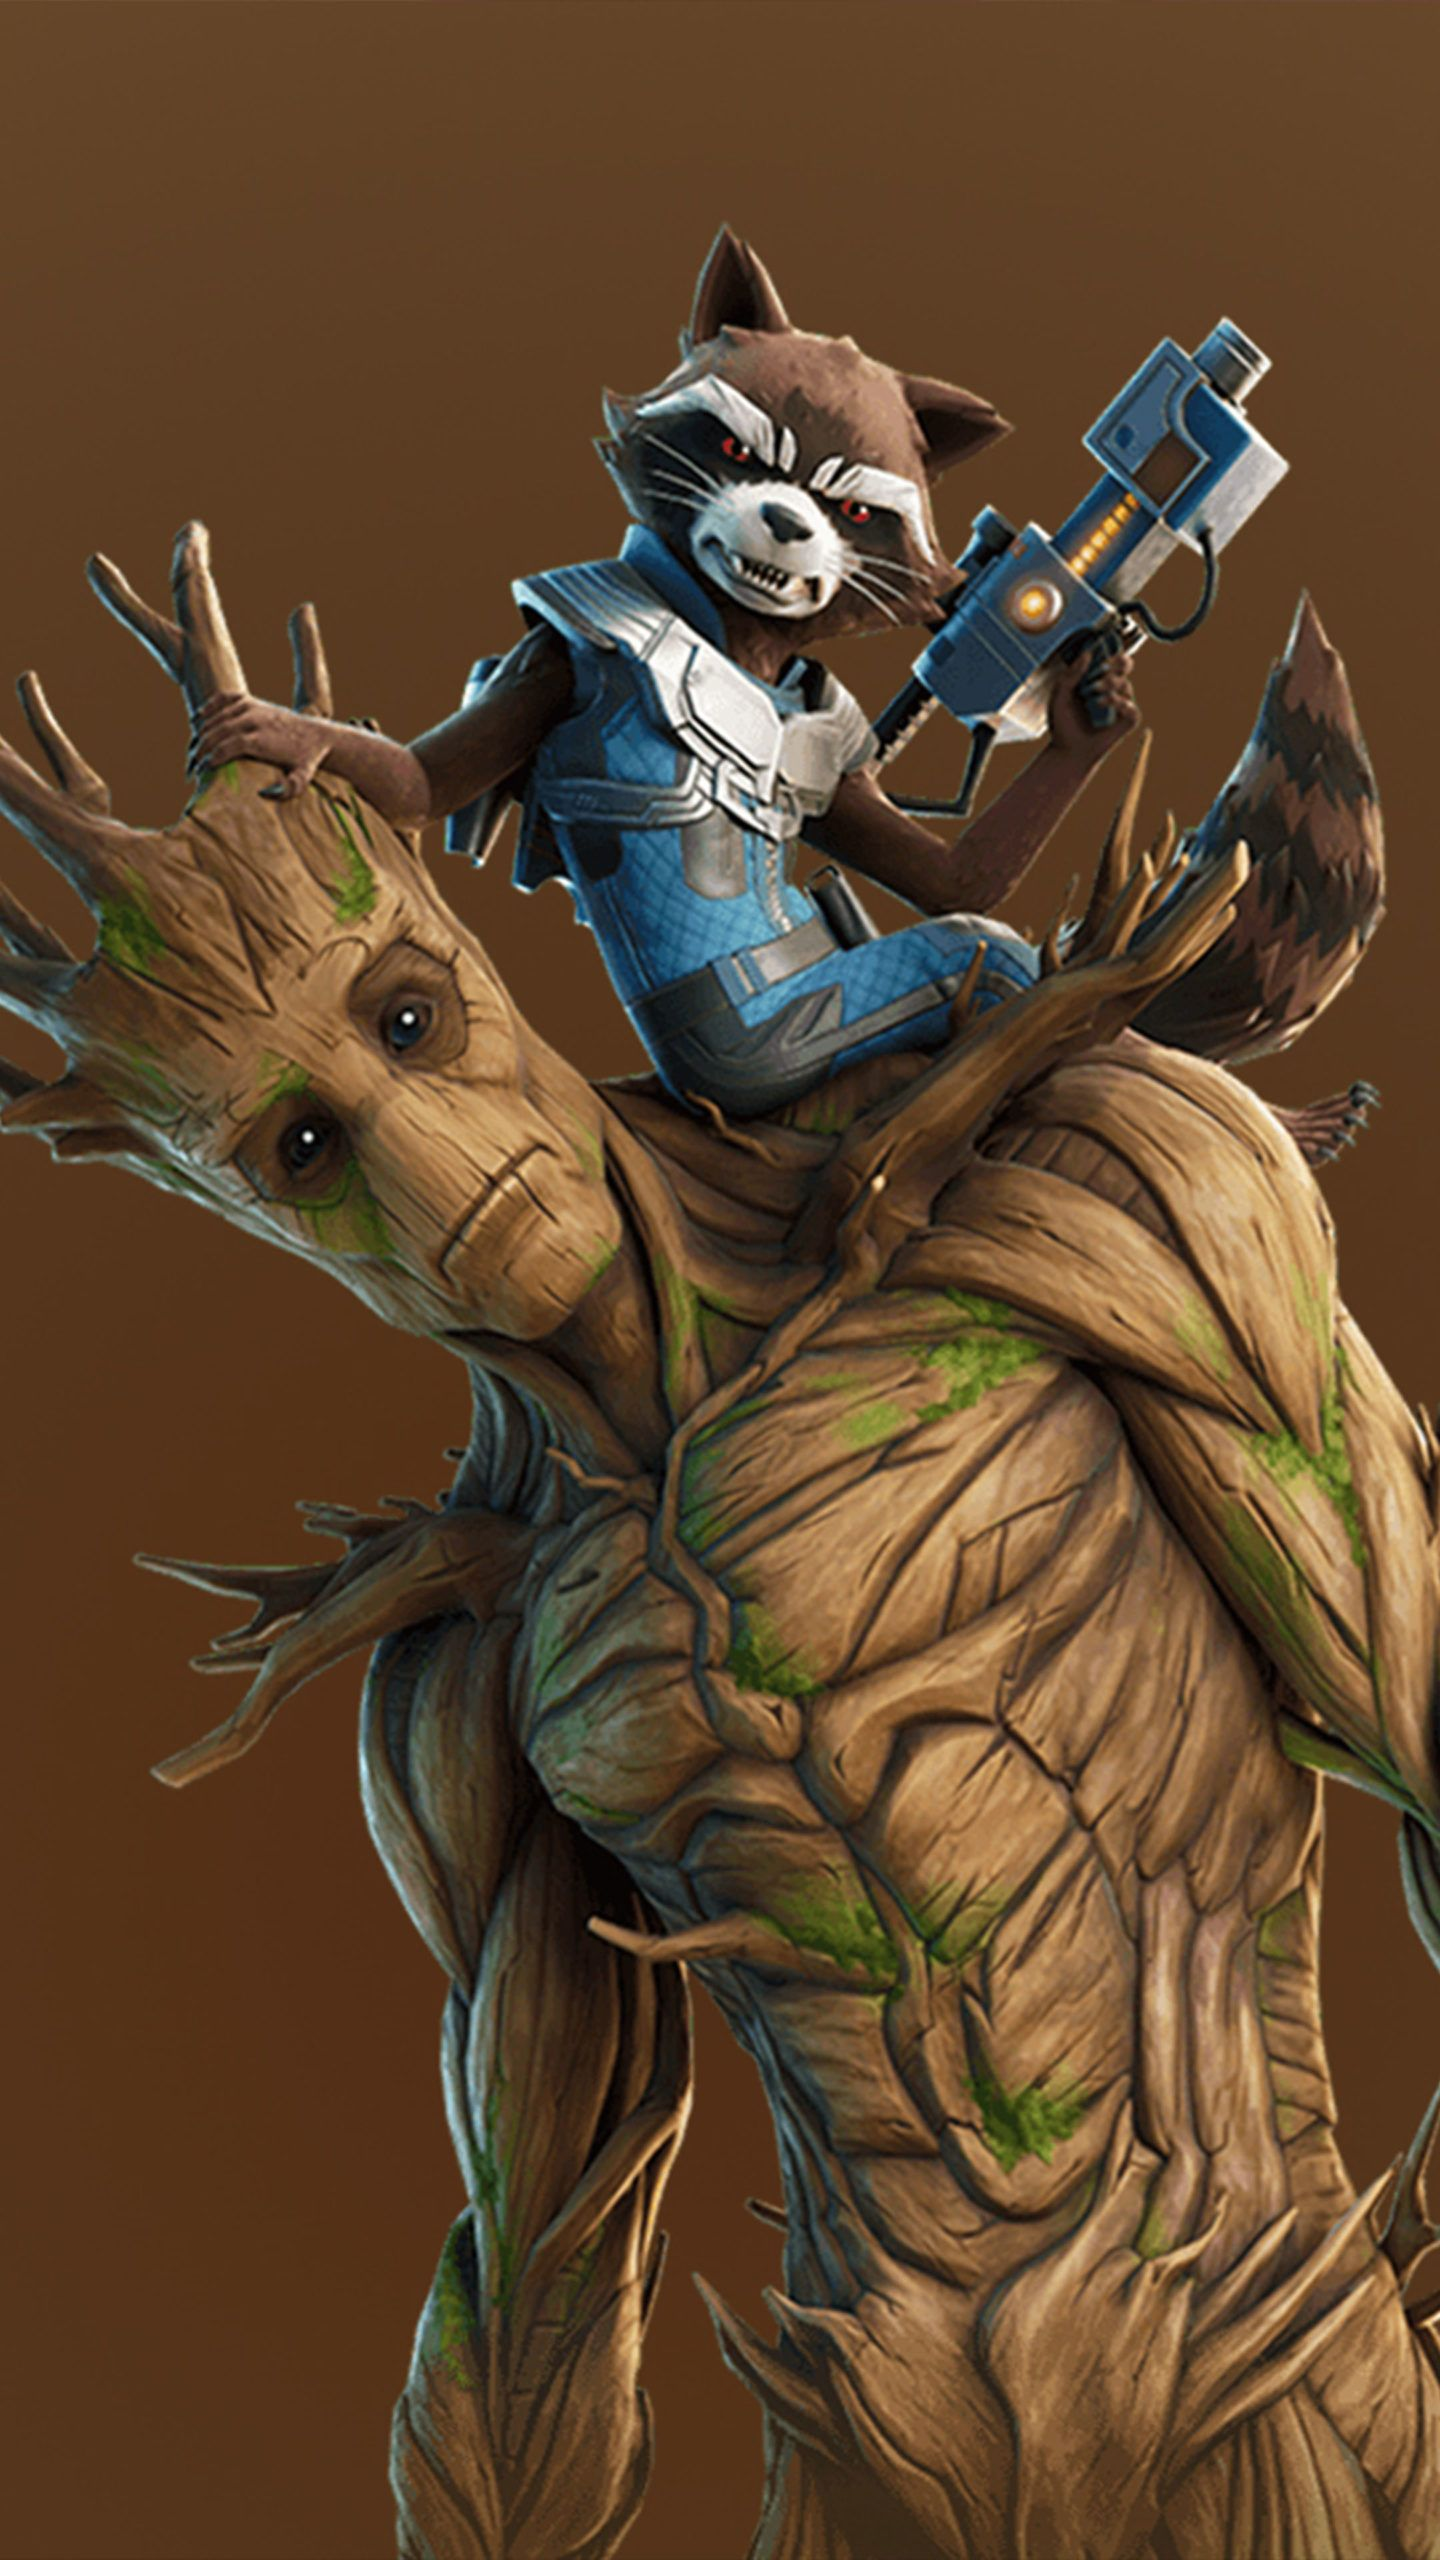 Groot And Rocket Fortnite 4k Ultra Hd Mobile Wallpaper In 2020 Groot Mobile Wallpaper Skins Characters